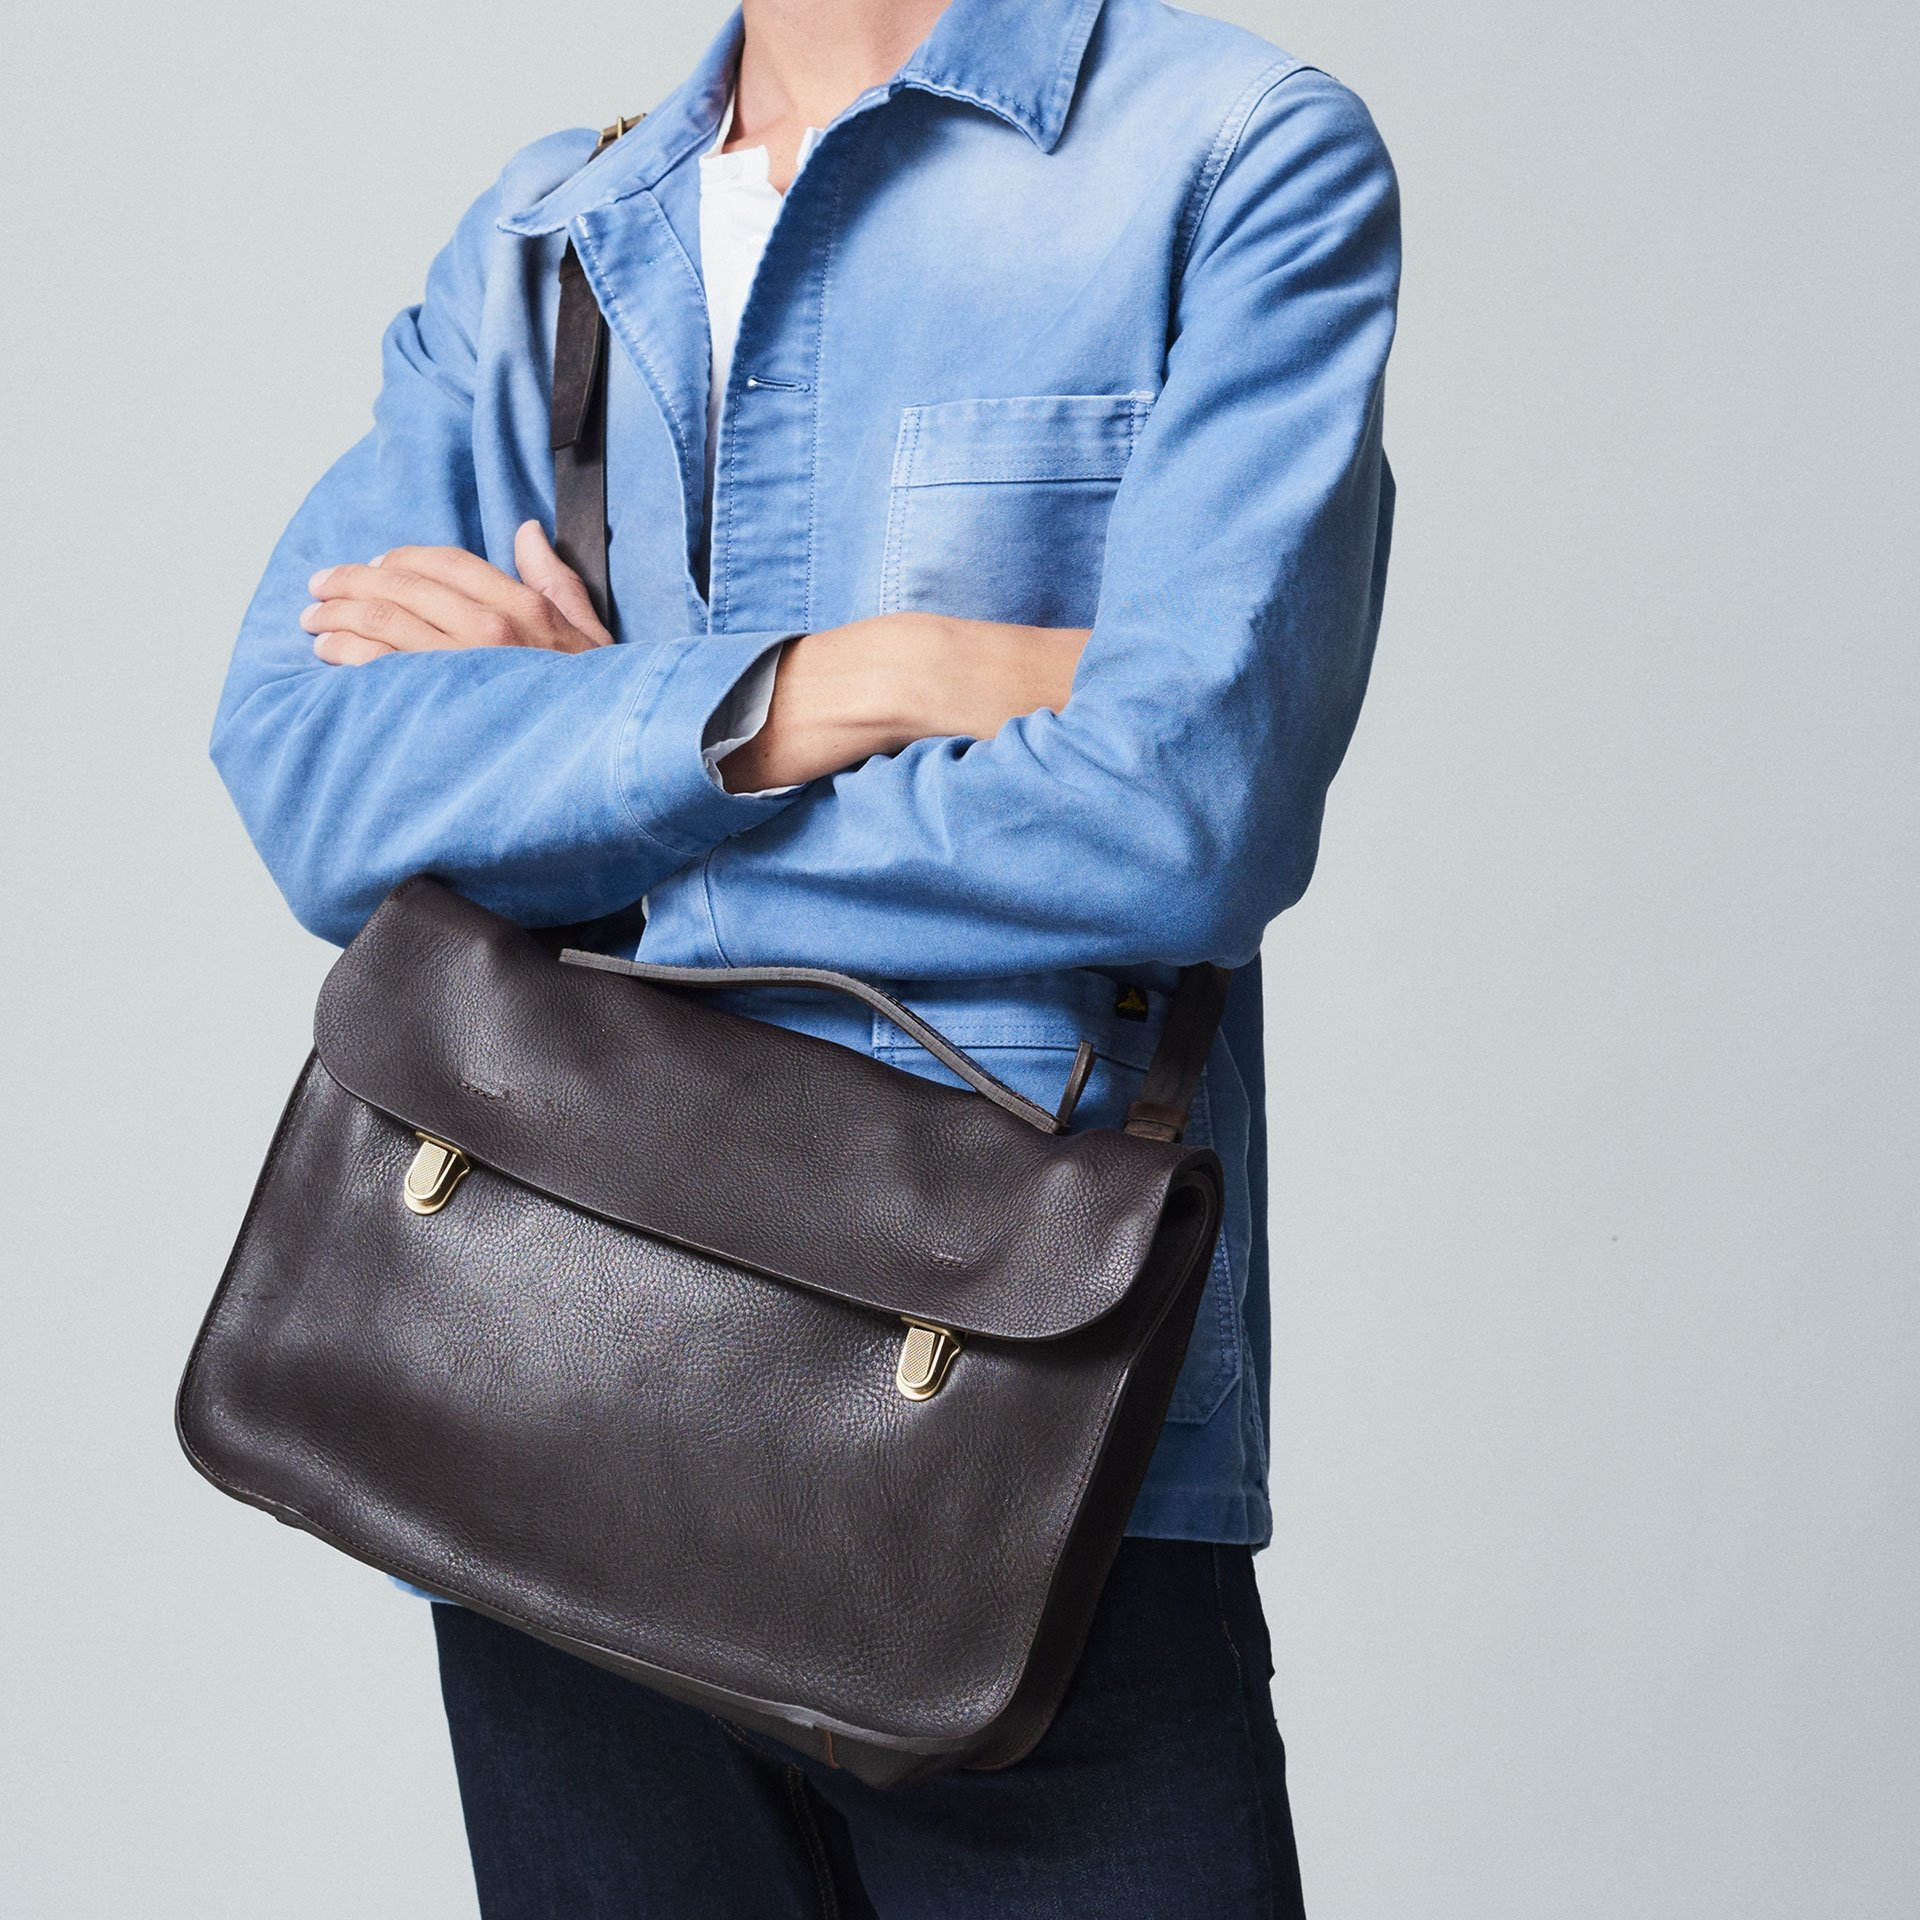 Groucho Leather Satchel - Black / E Pure (image n°5)